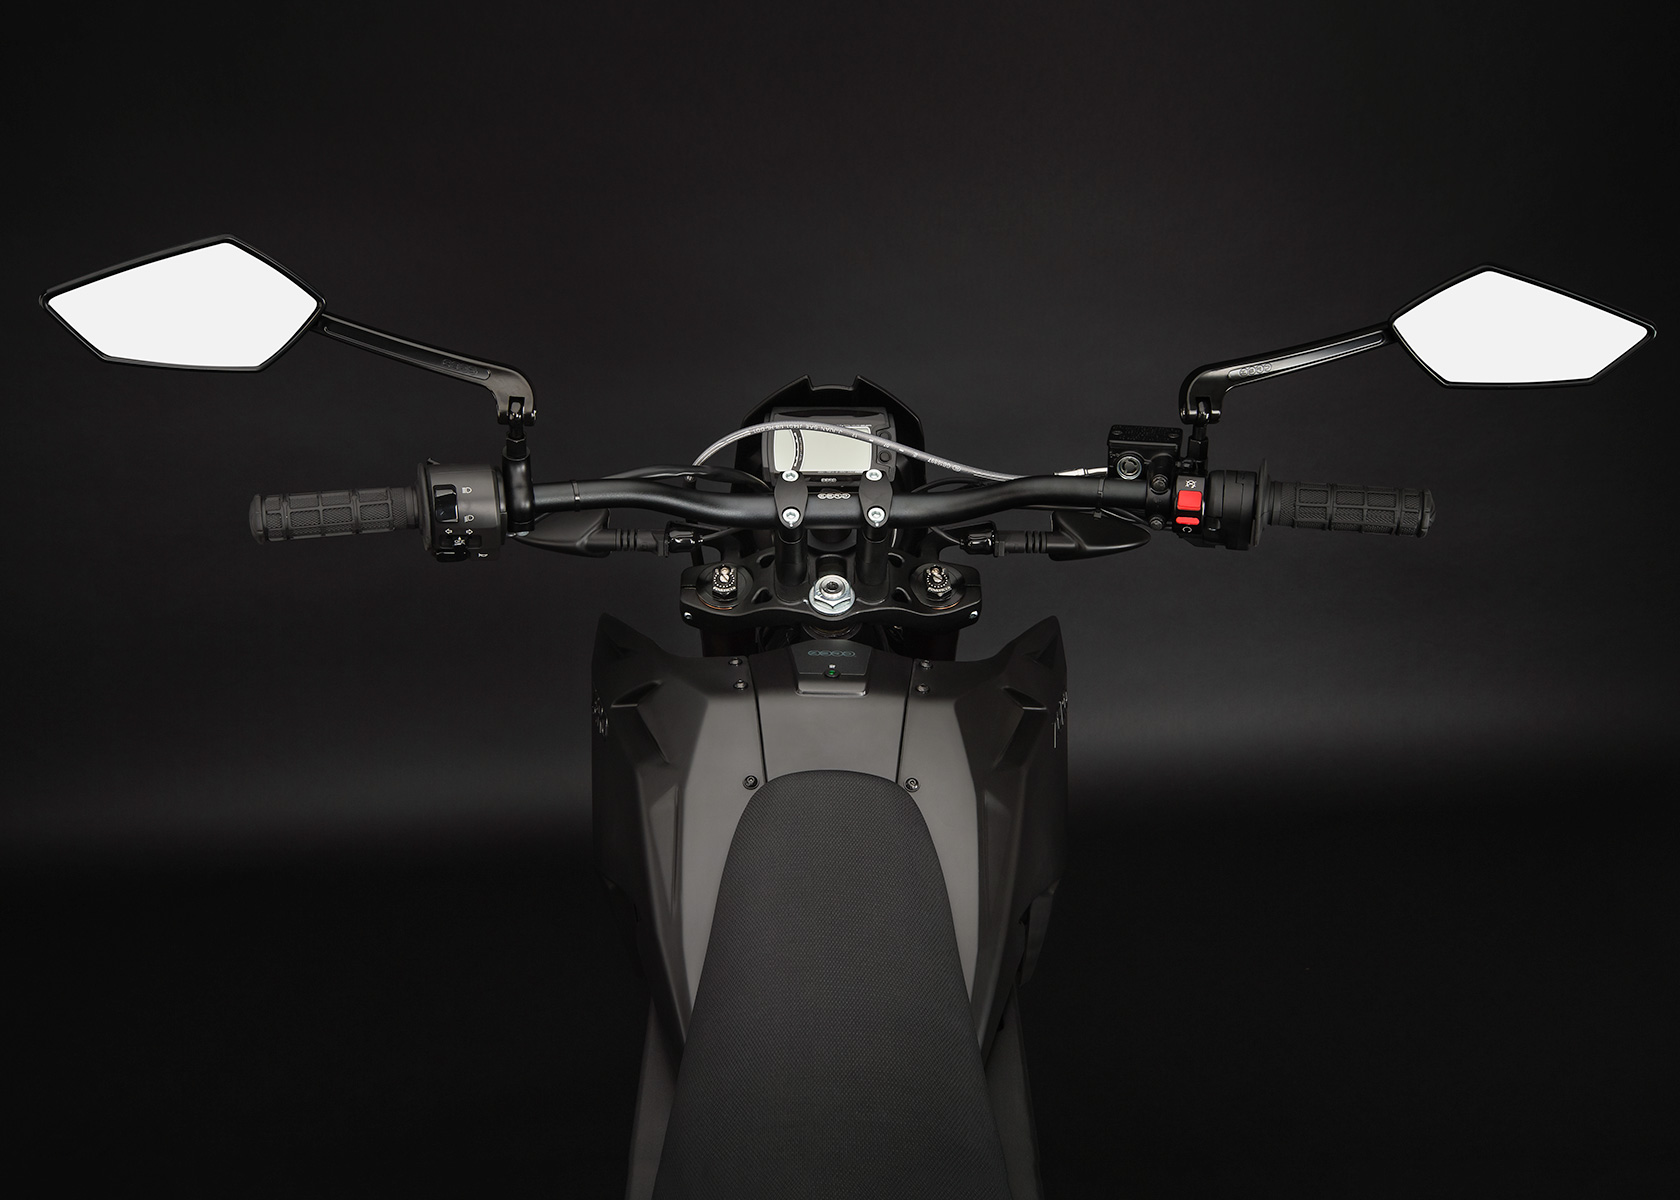 2013 Zero FX Electric Motorcycle: Rider View